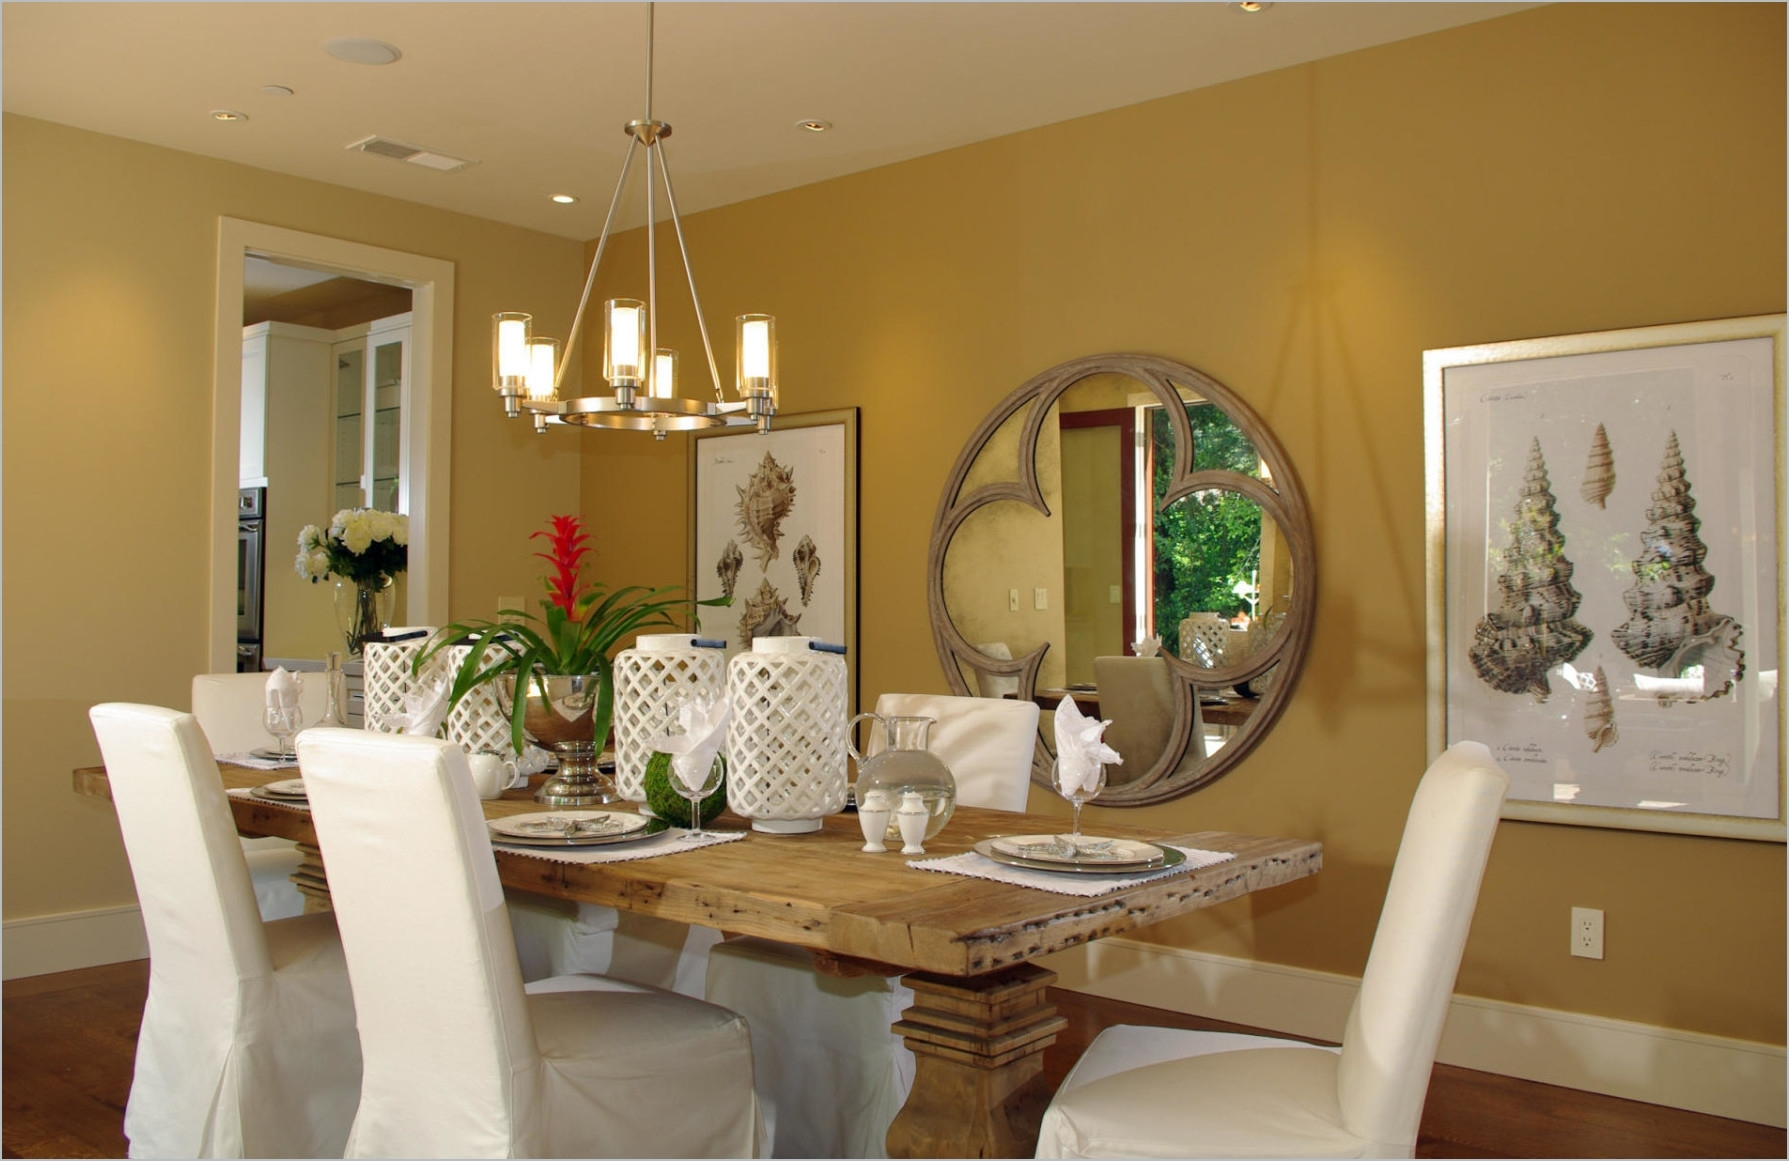 Free Dining Room Wall Decor Pictures In Formal Decorating Ideas On Inside Newest Dining Room Wall Accents (View 8 of 15)